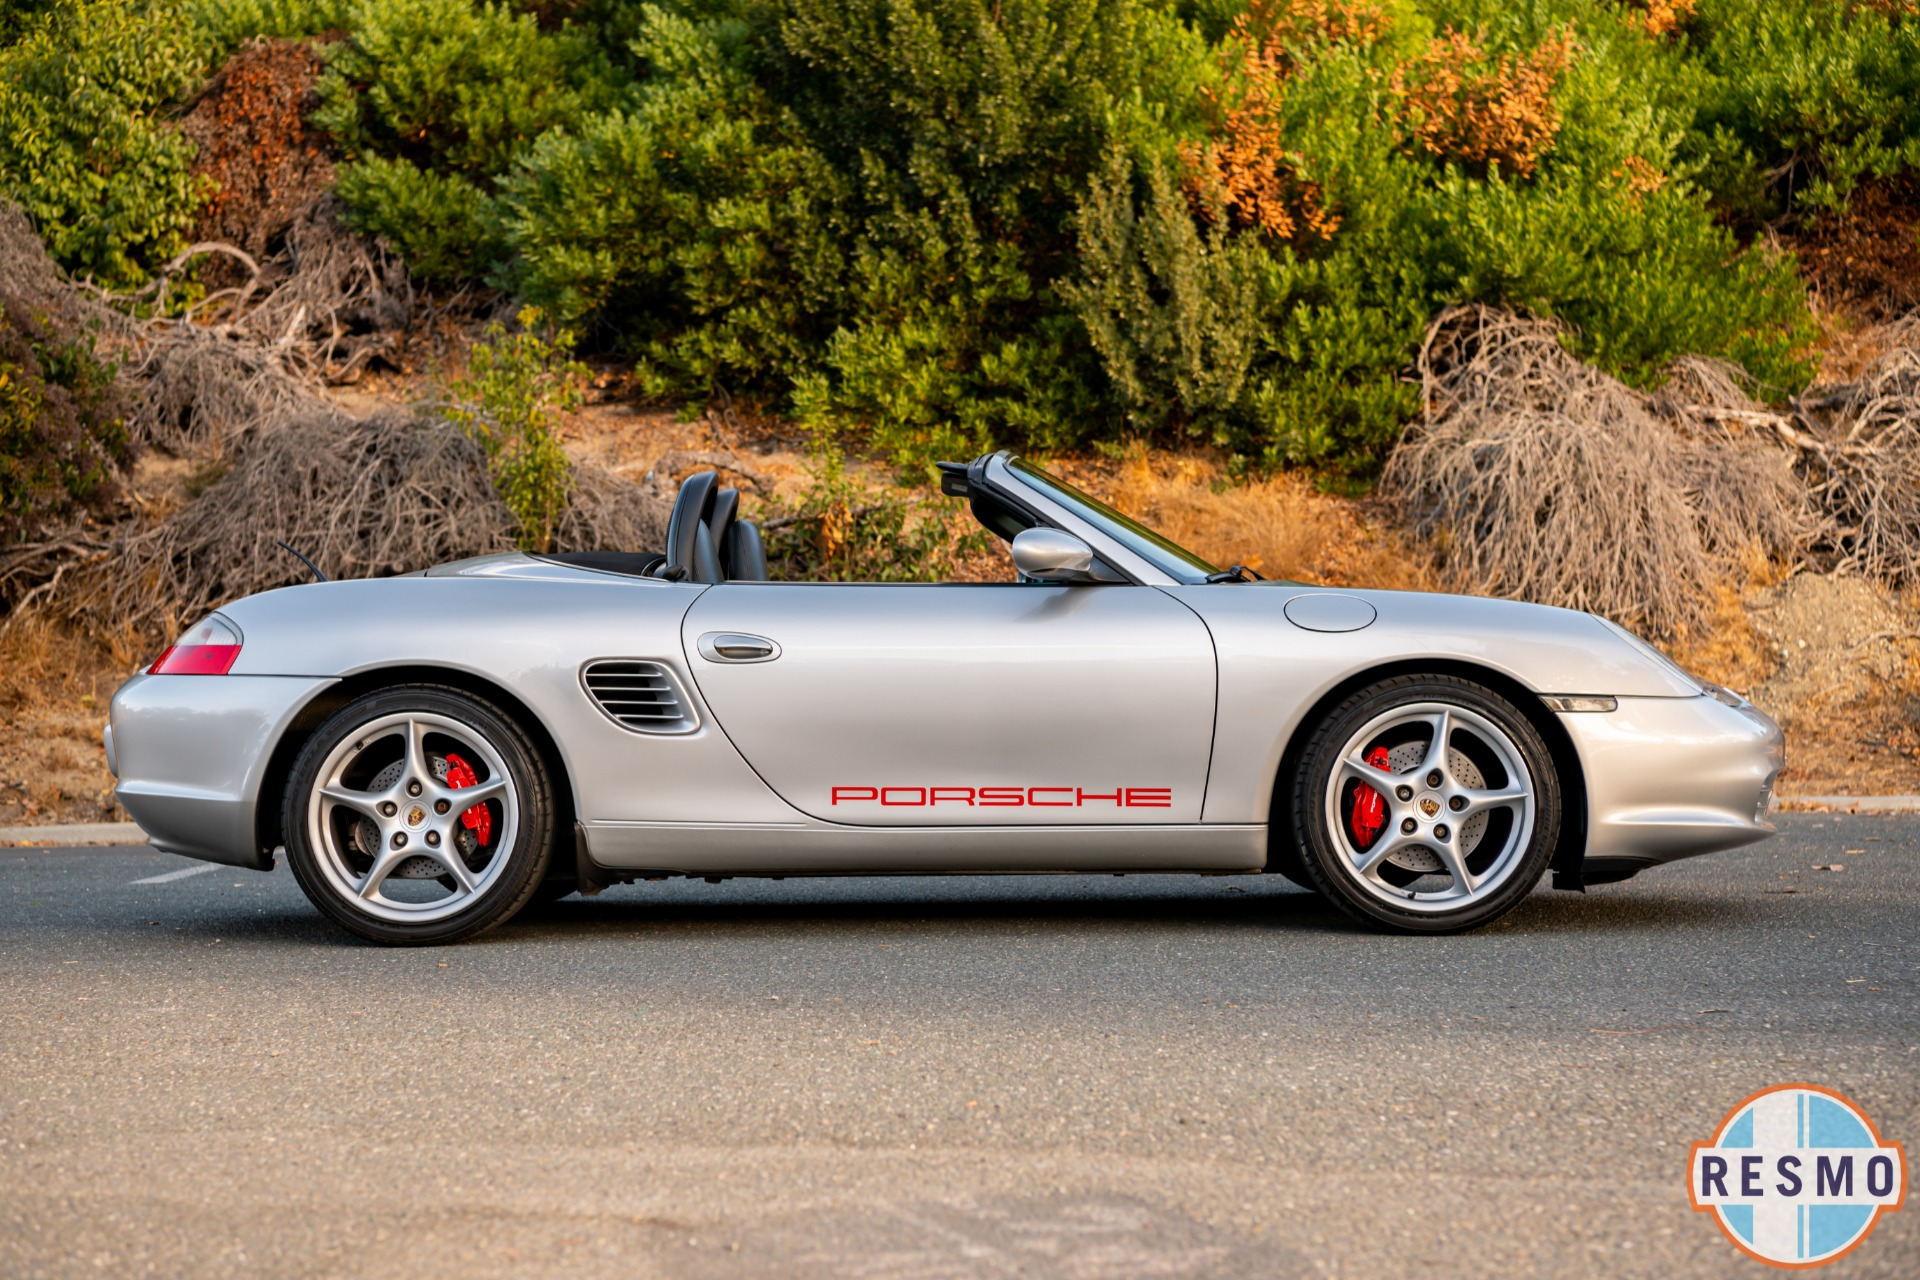 Used 2003 Porsche Boxster S Used 2003 Porsche Boxster S for sale Sold at Response Motors in Mountain View CA 4